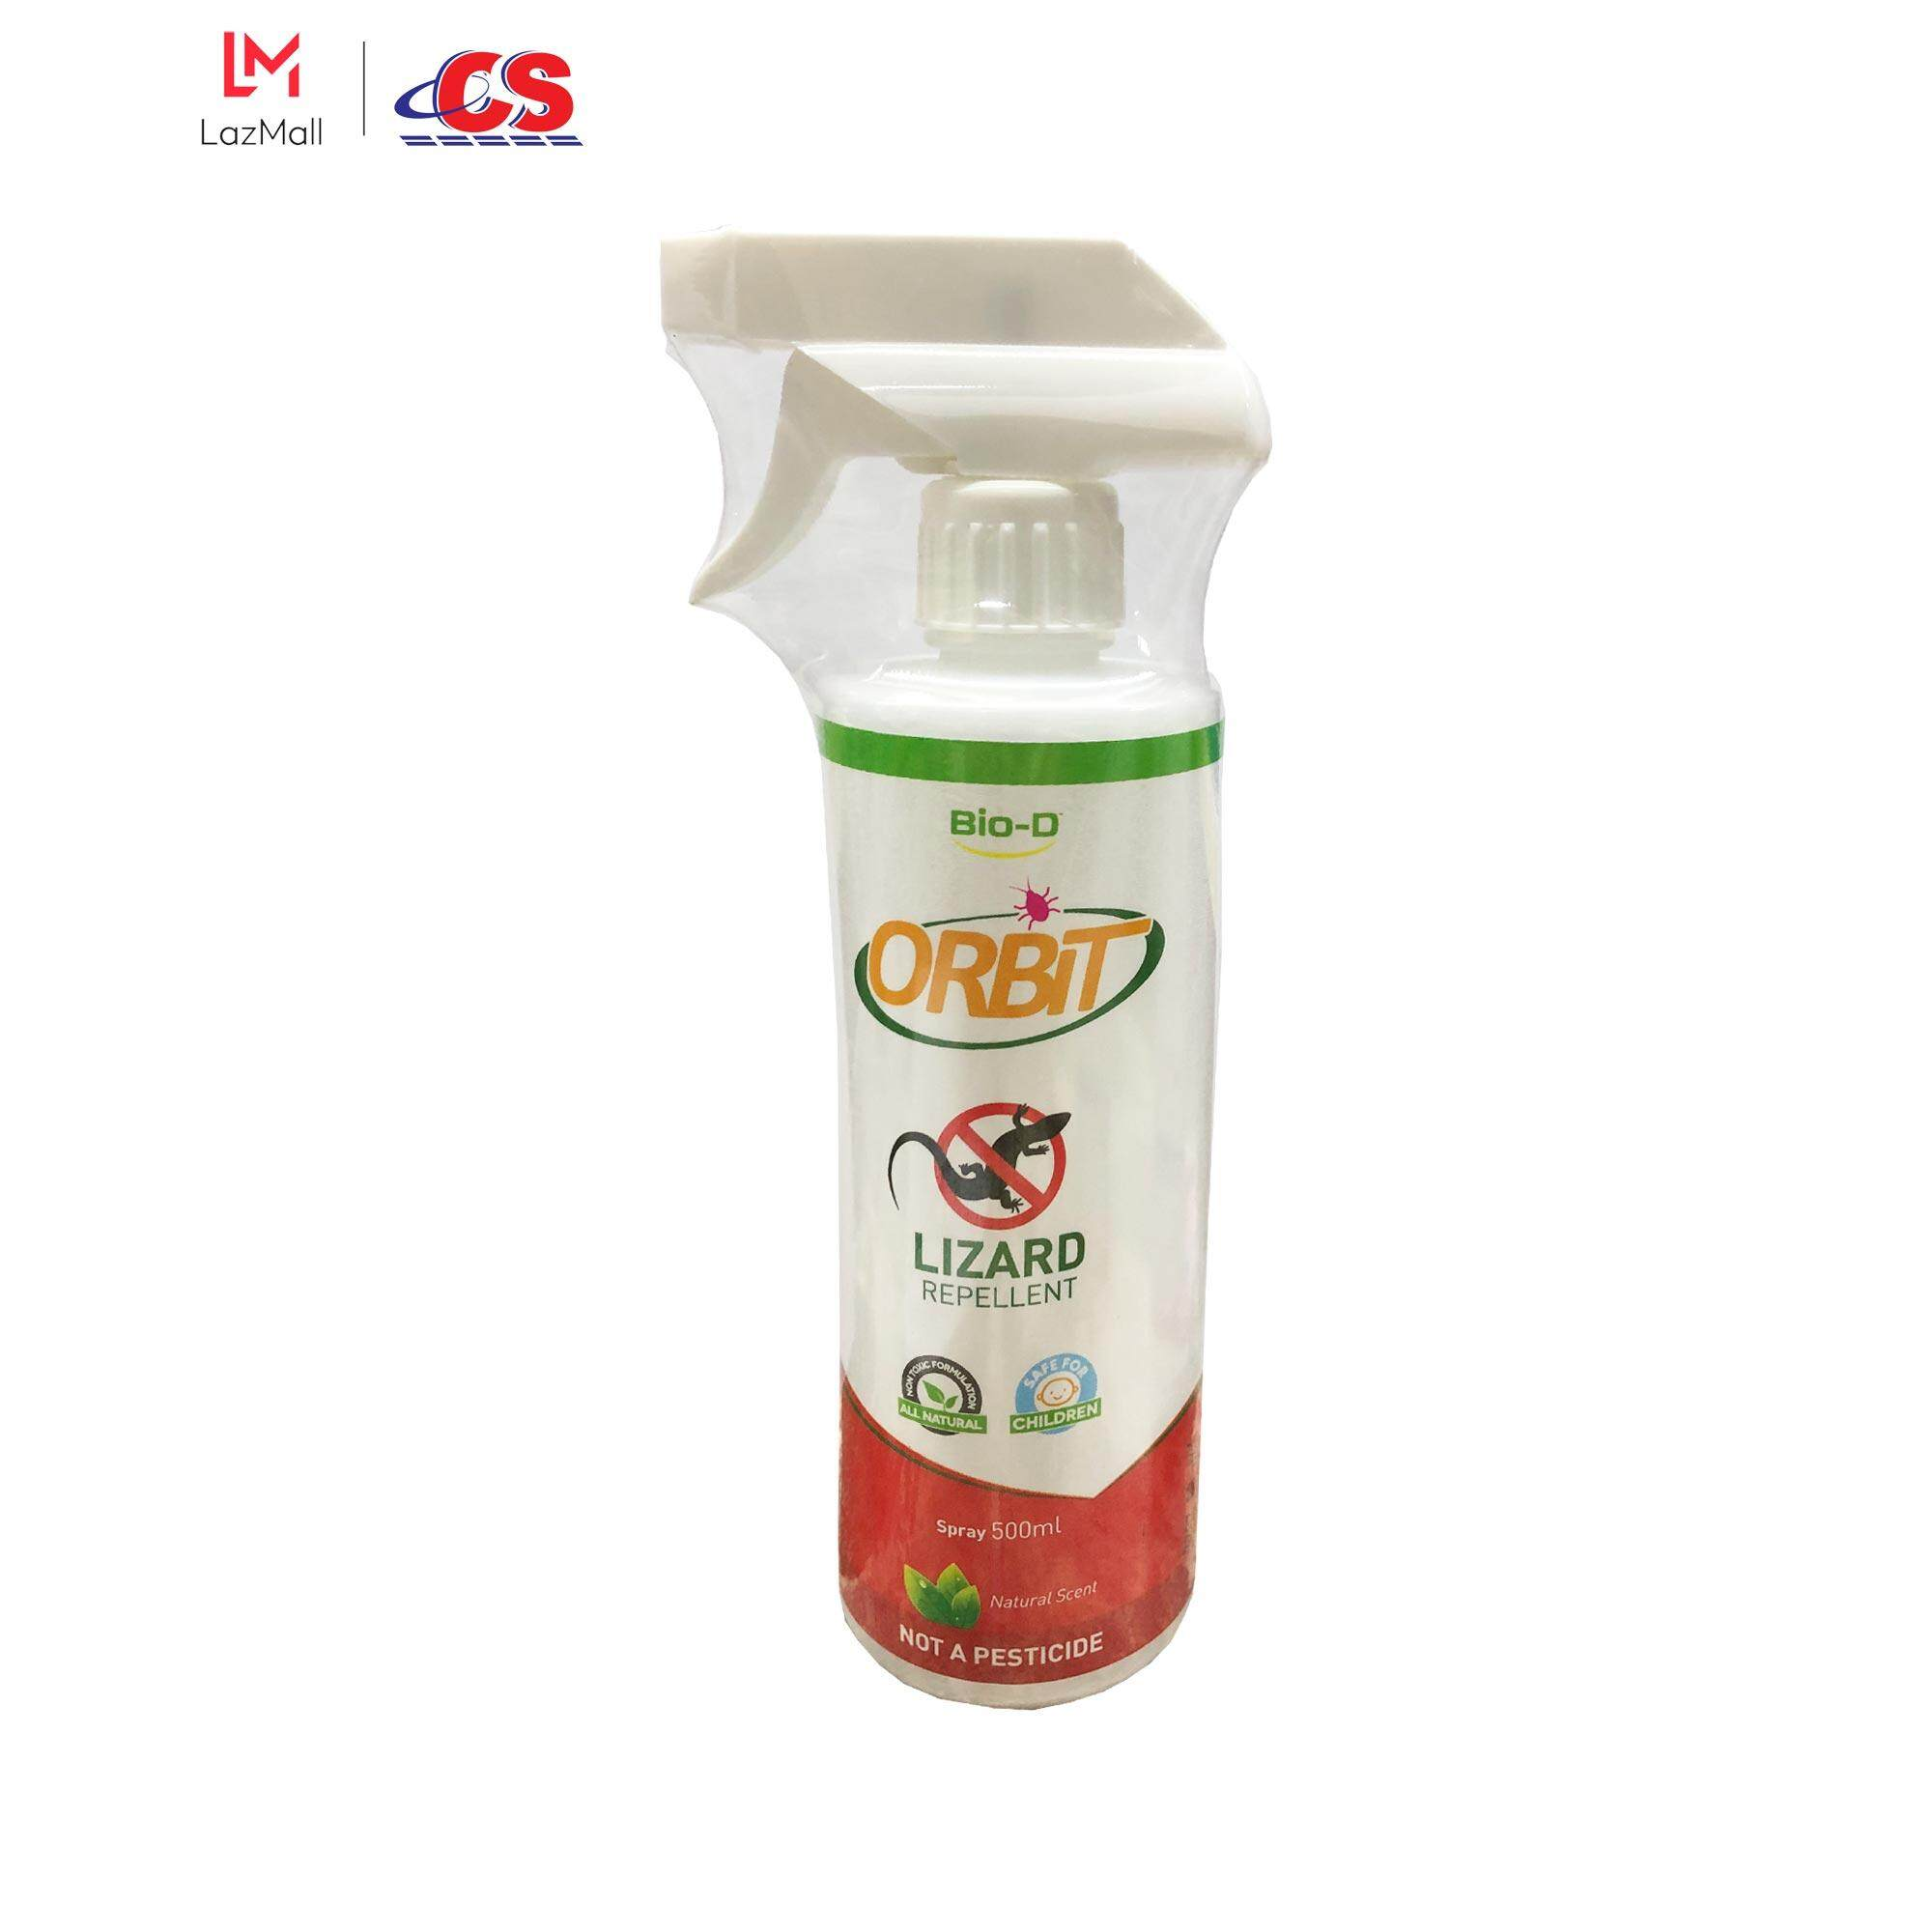 BIO-D ORBIT Lizard Repellent 500ml